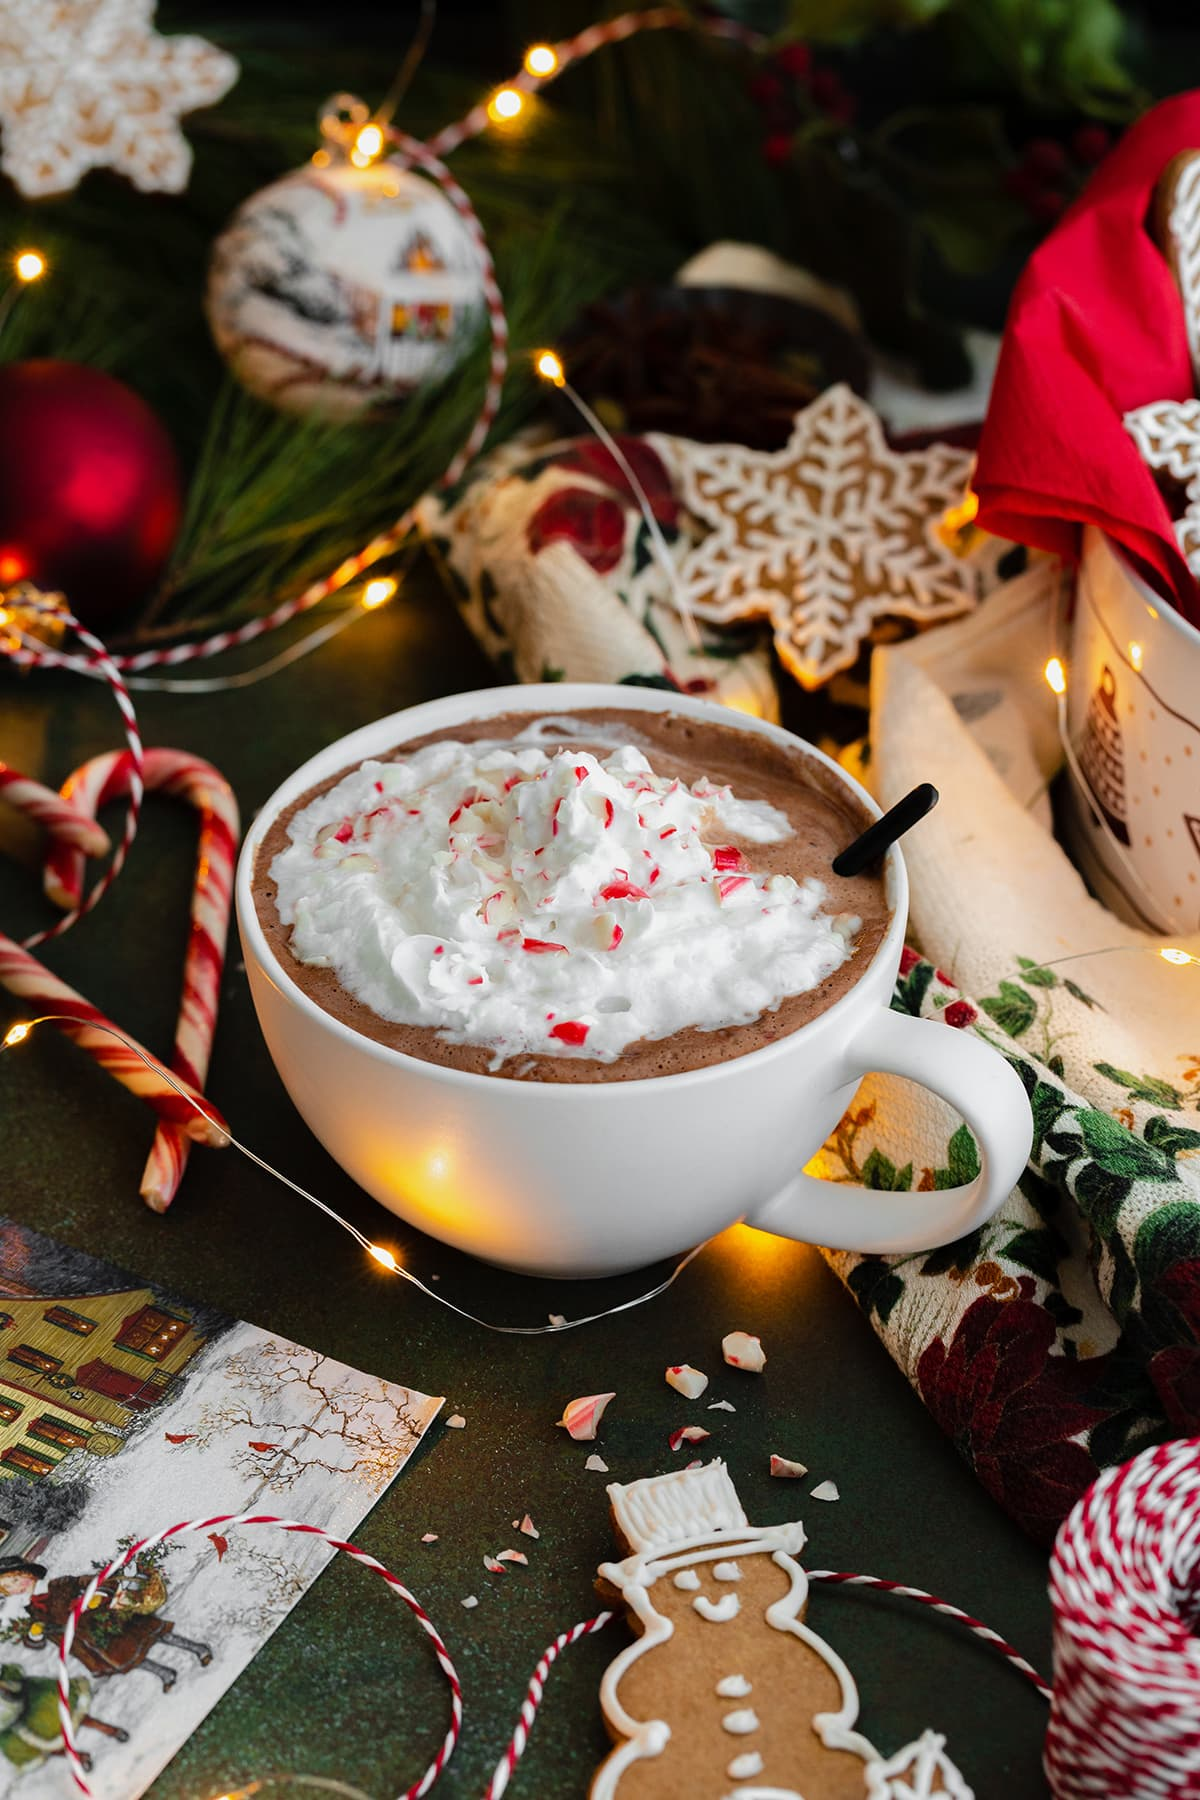 Peppermint hot chocolate in a white cup topped with whipped cream and crushed candy cane. Spoon inside the cup on the right side. Gingerbread cookies aranged around the cup. Dark green background.